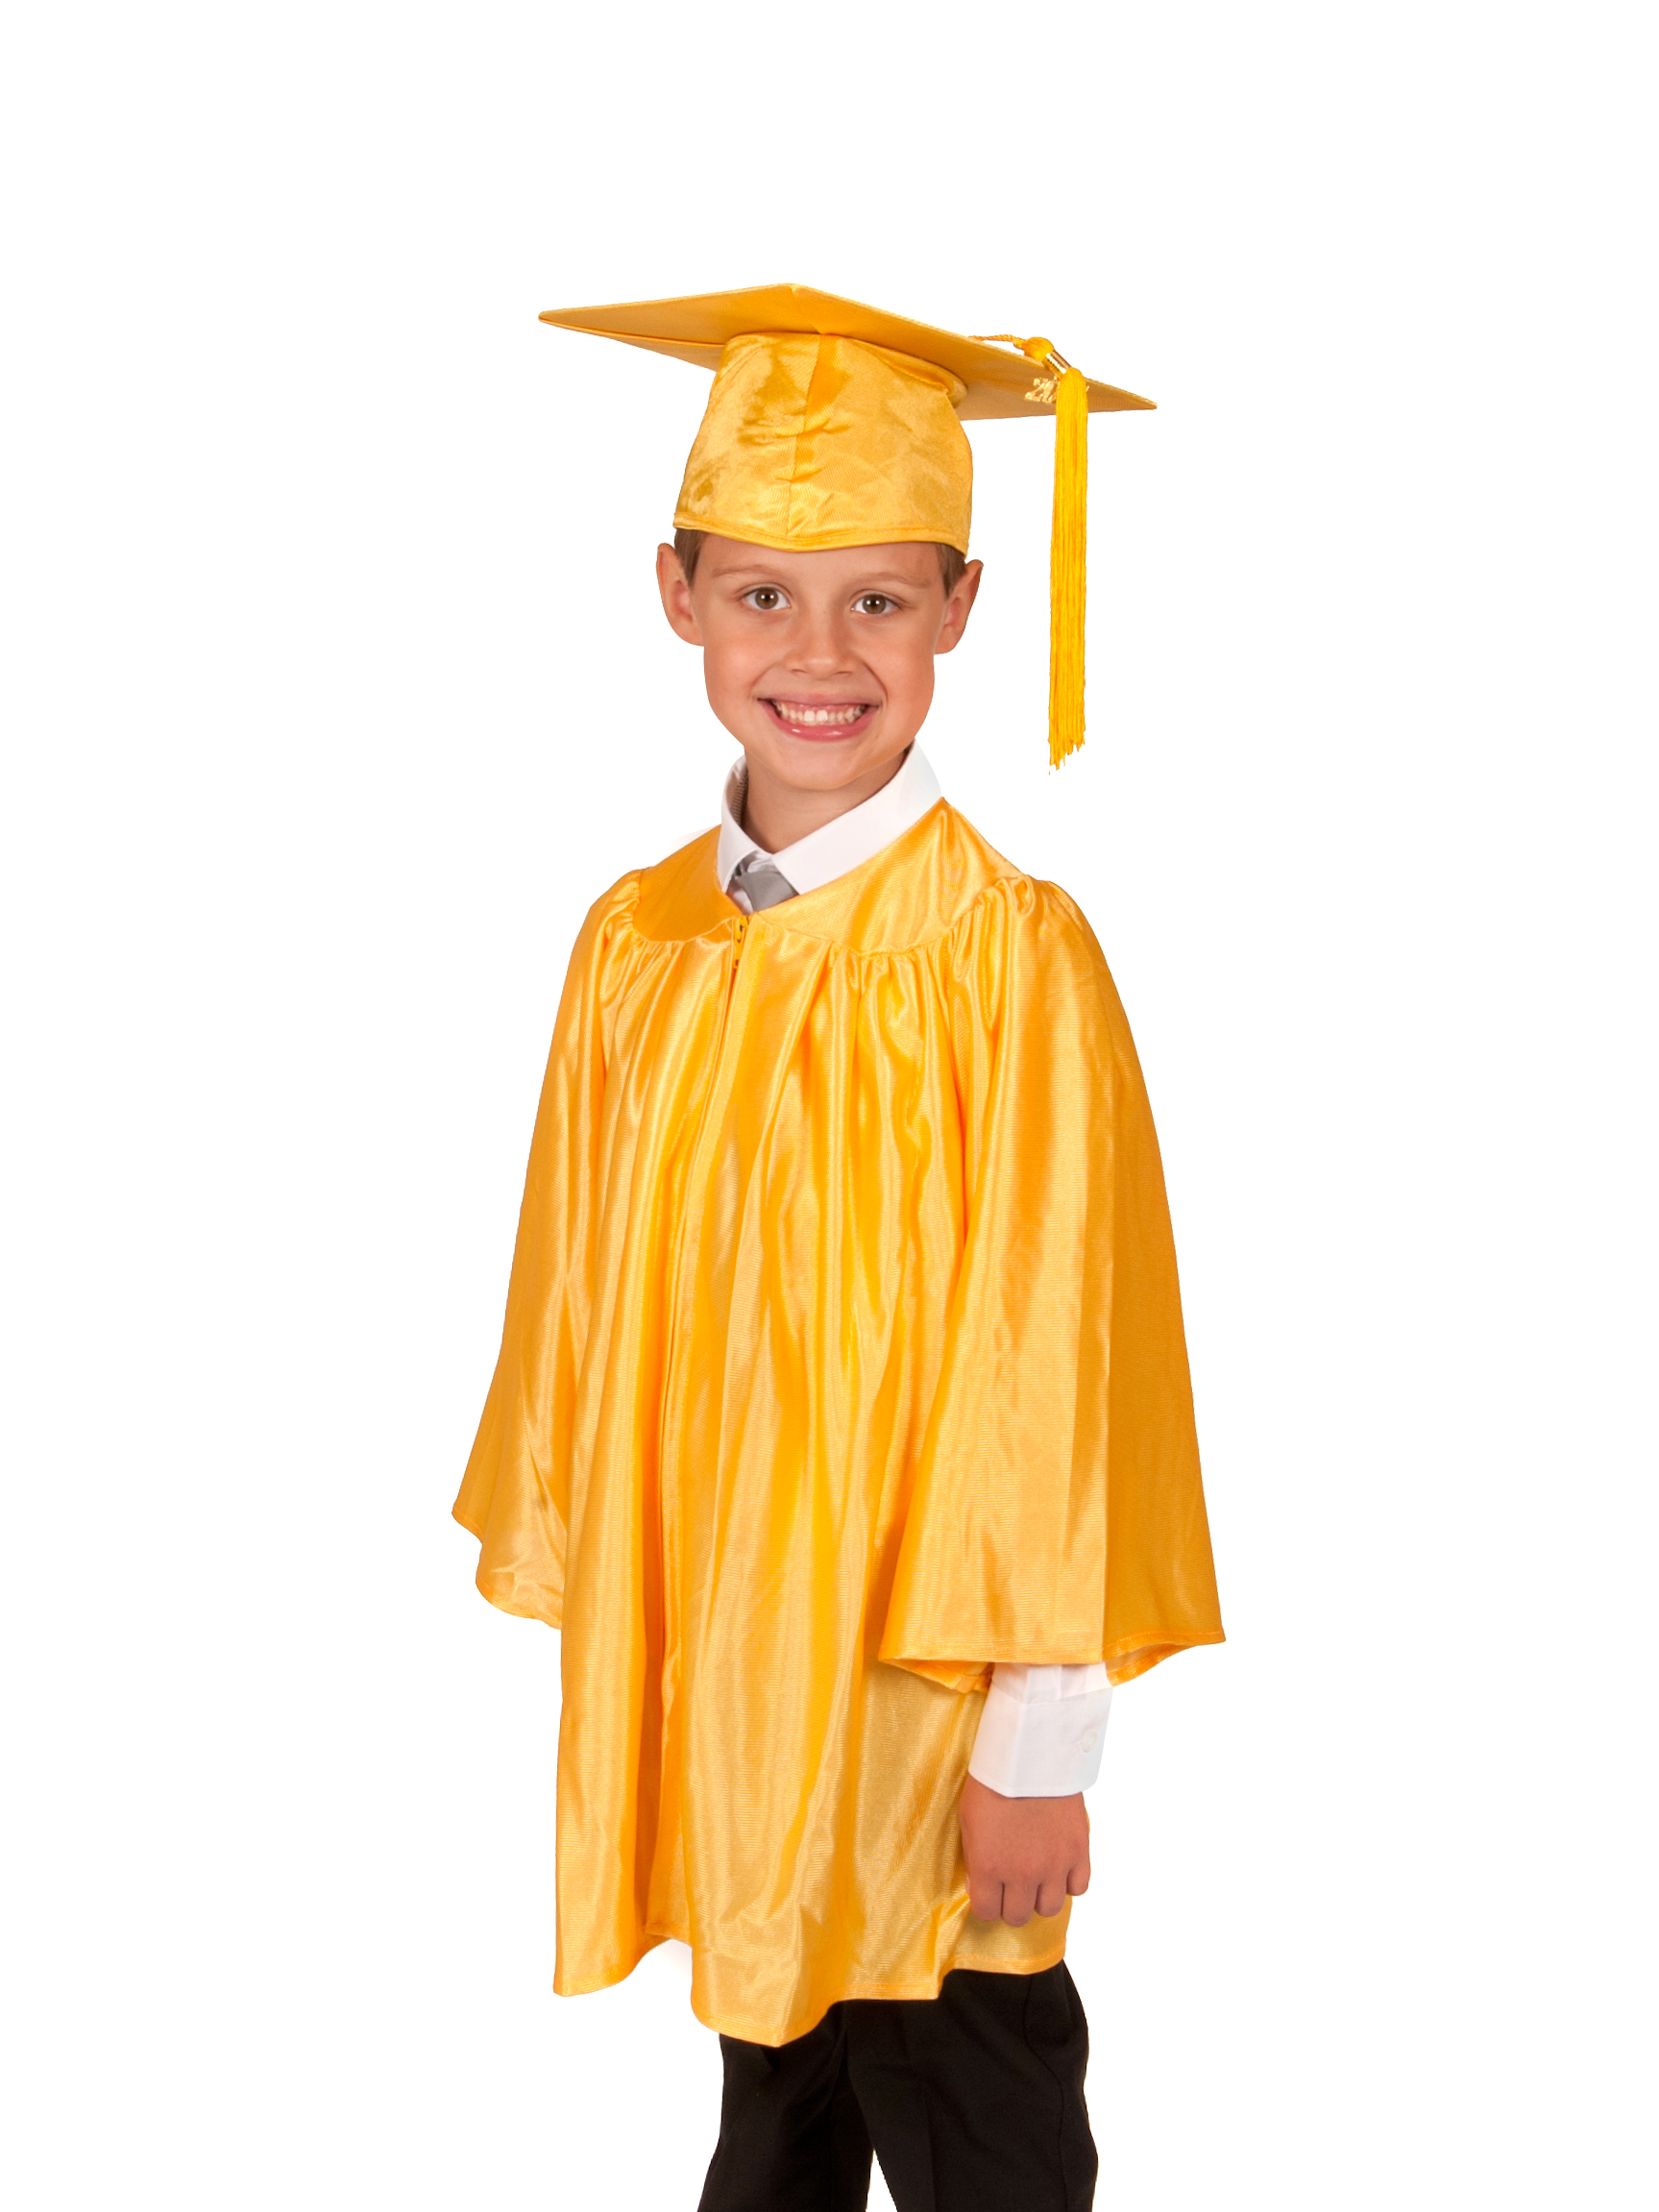 Shiny Primary School Graduation Gown and Cap - Graduation Gowns in ...